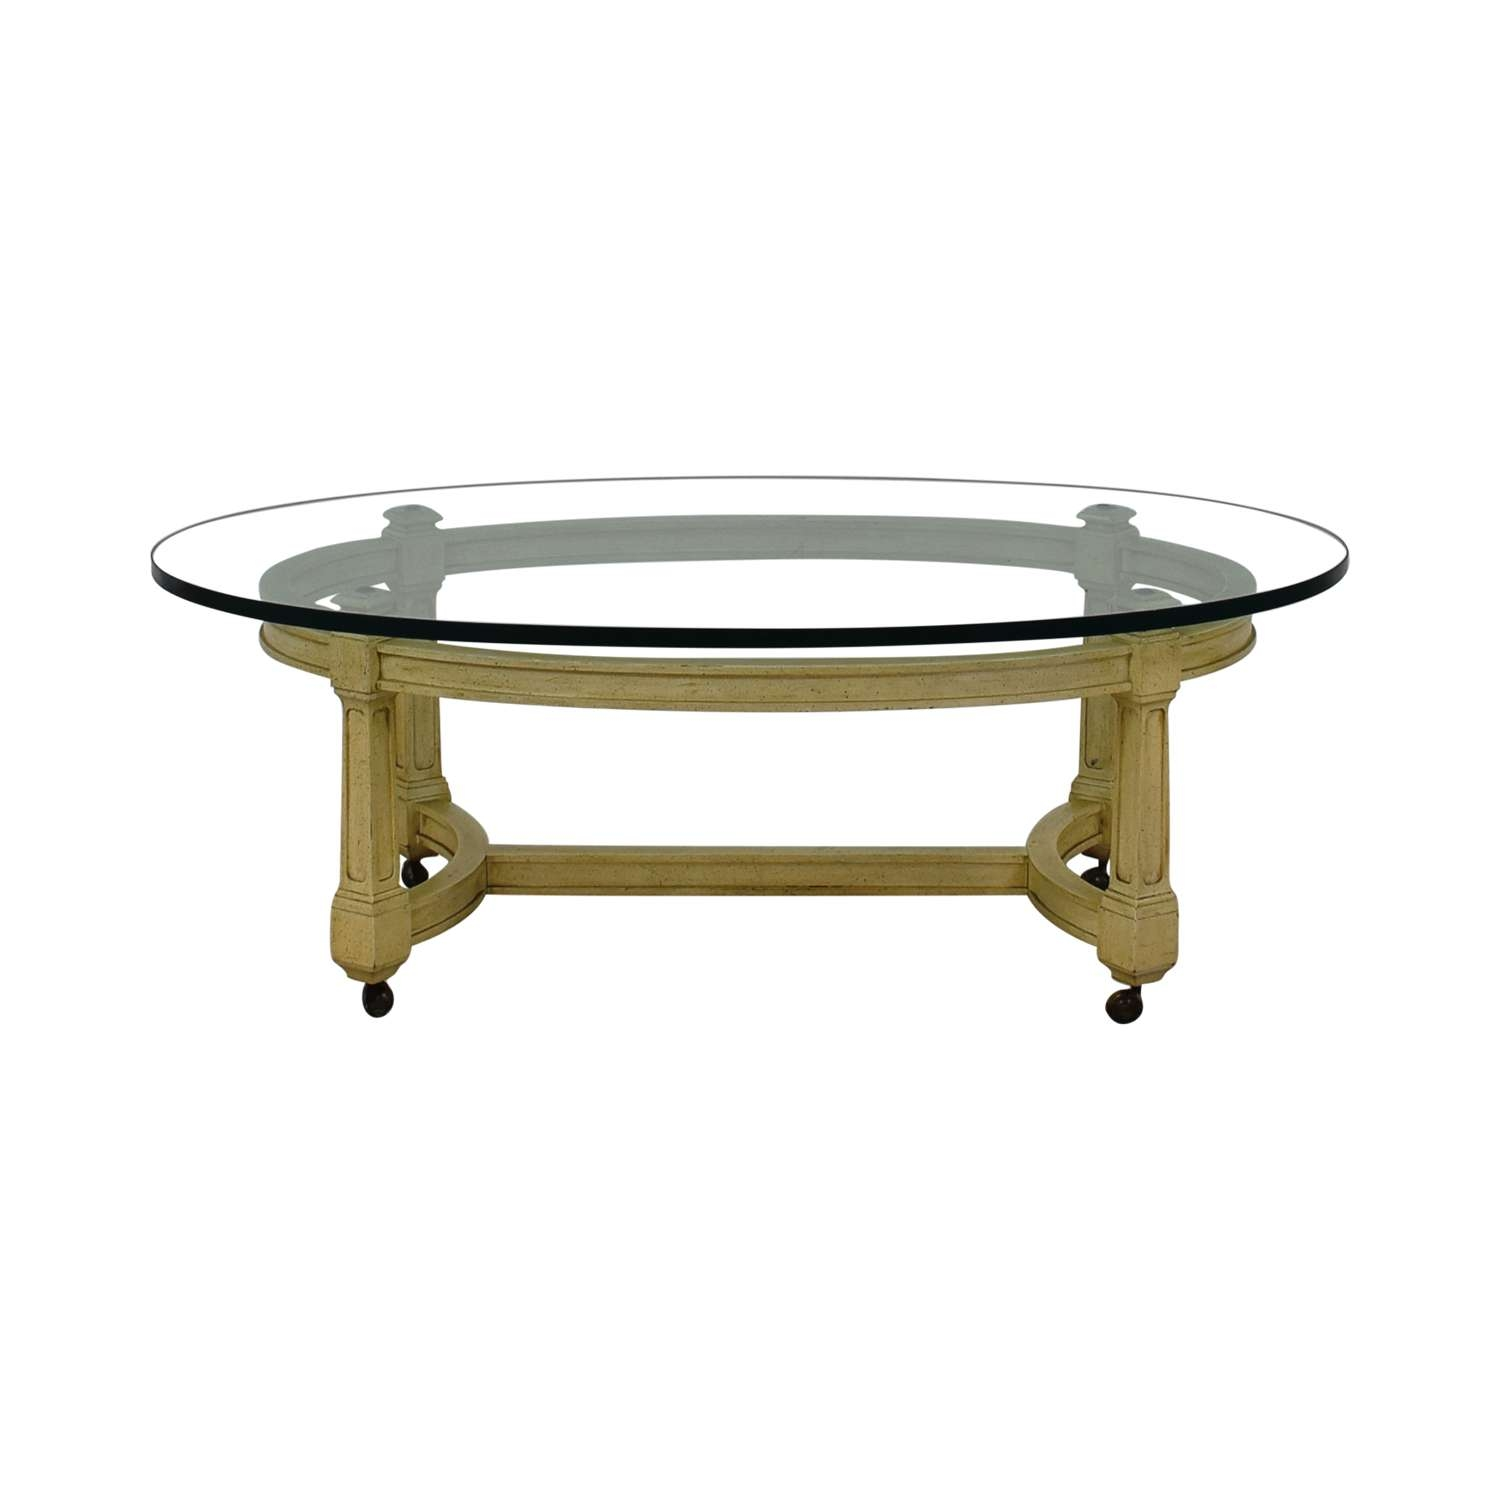 [%popular White Oval Coffee Tables Inside 76% Off – Bo Concept Bo Concept White Round Coffee Table / Tables|76% Off – Bo Concept Bo Concept White Round Coffee Table / Tables In Popular White Oval Coffee Tables%] (View 16 of 20)